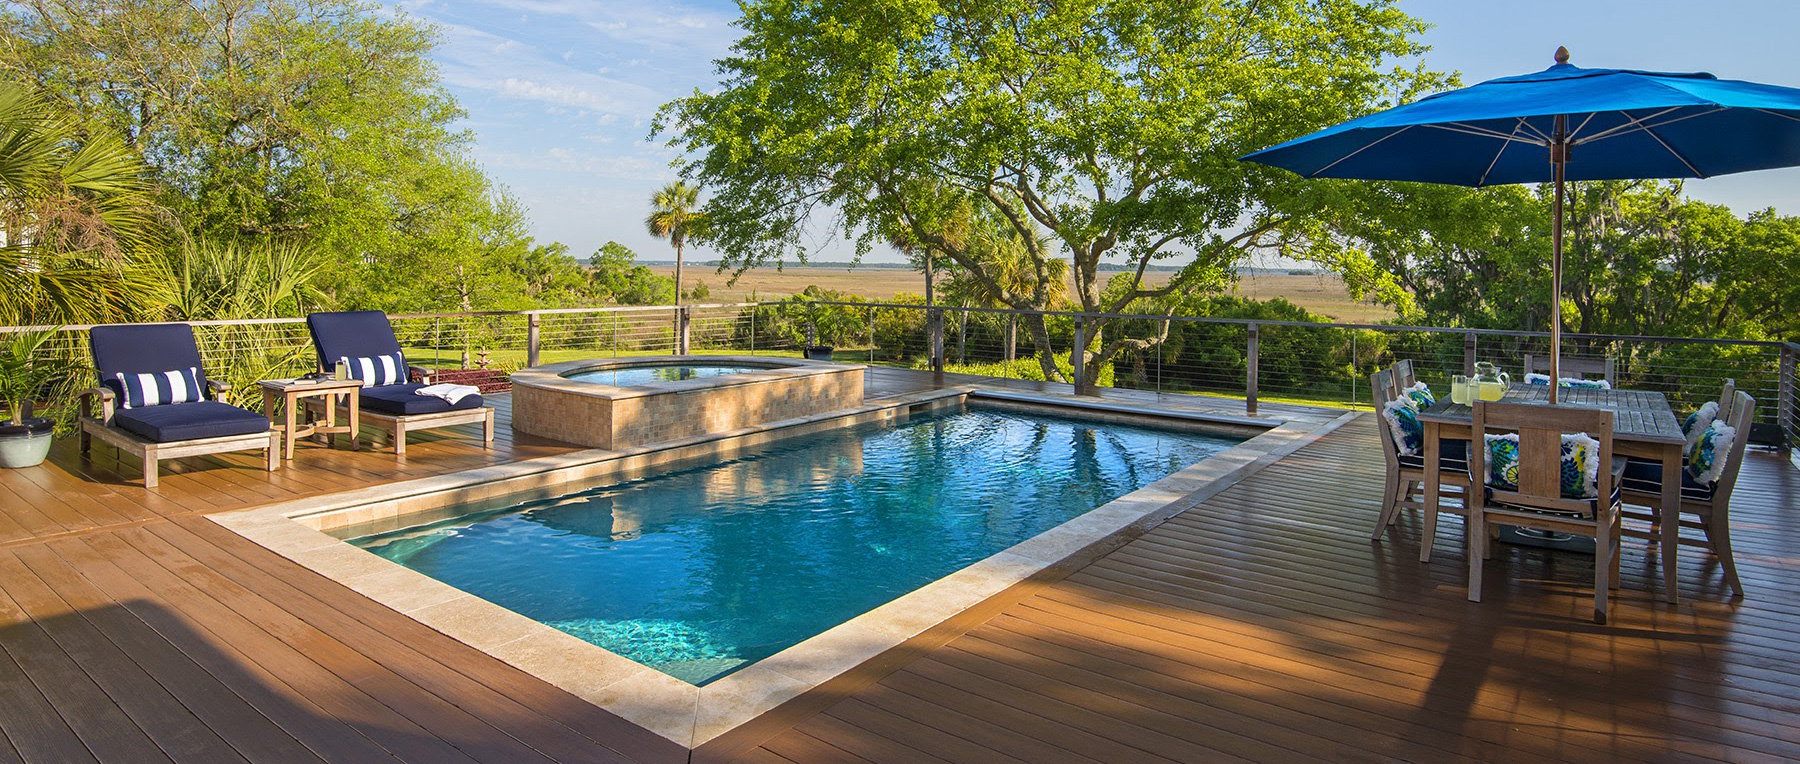 Elevated Pool elevated pool spa combo in deck | aqua blue pools